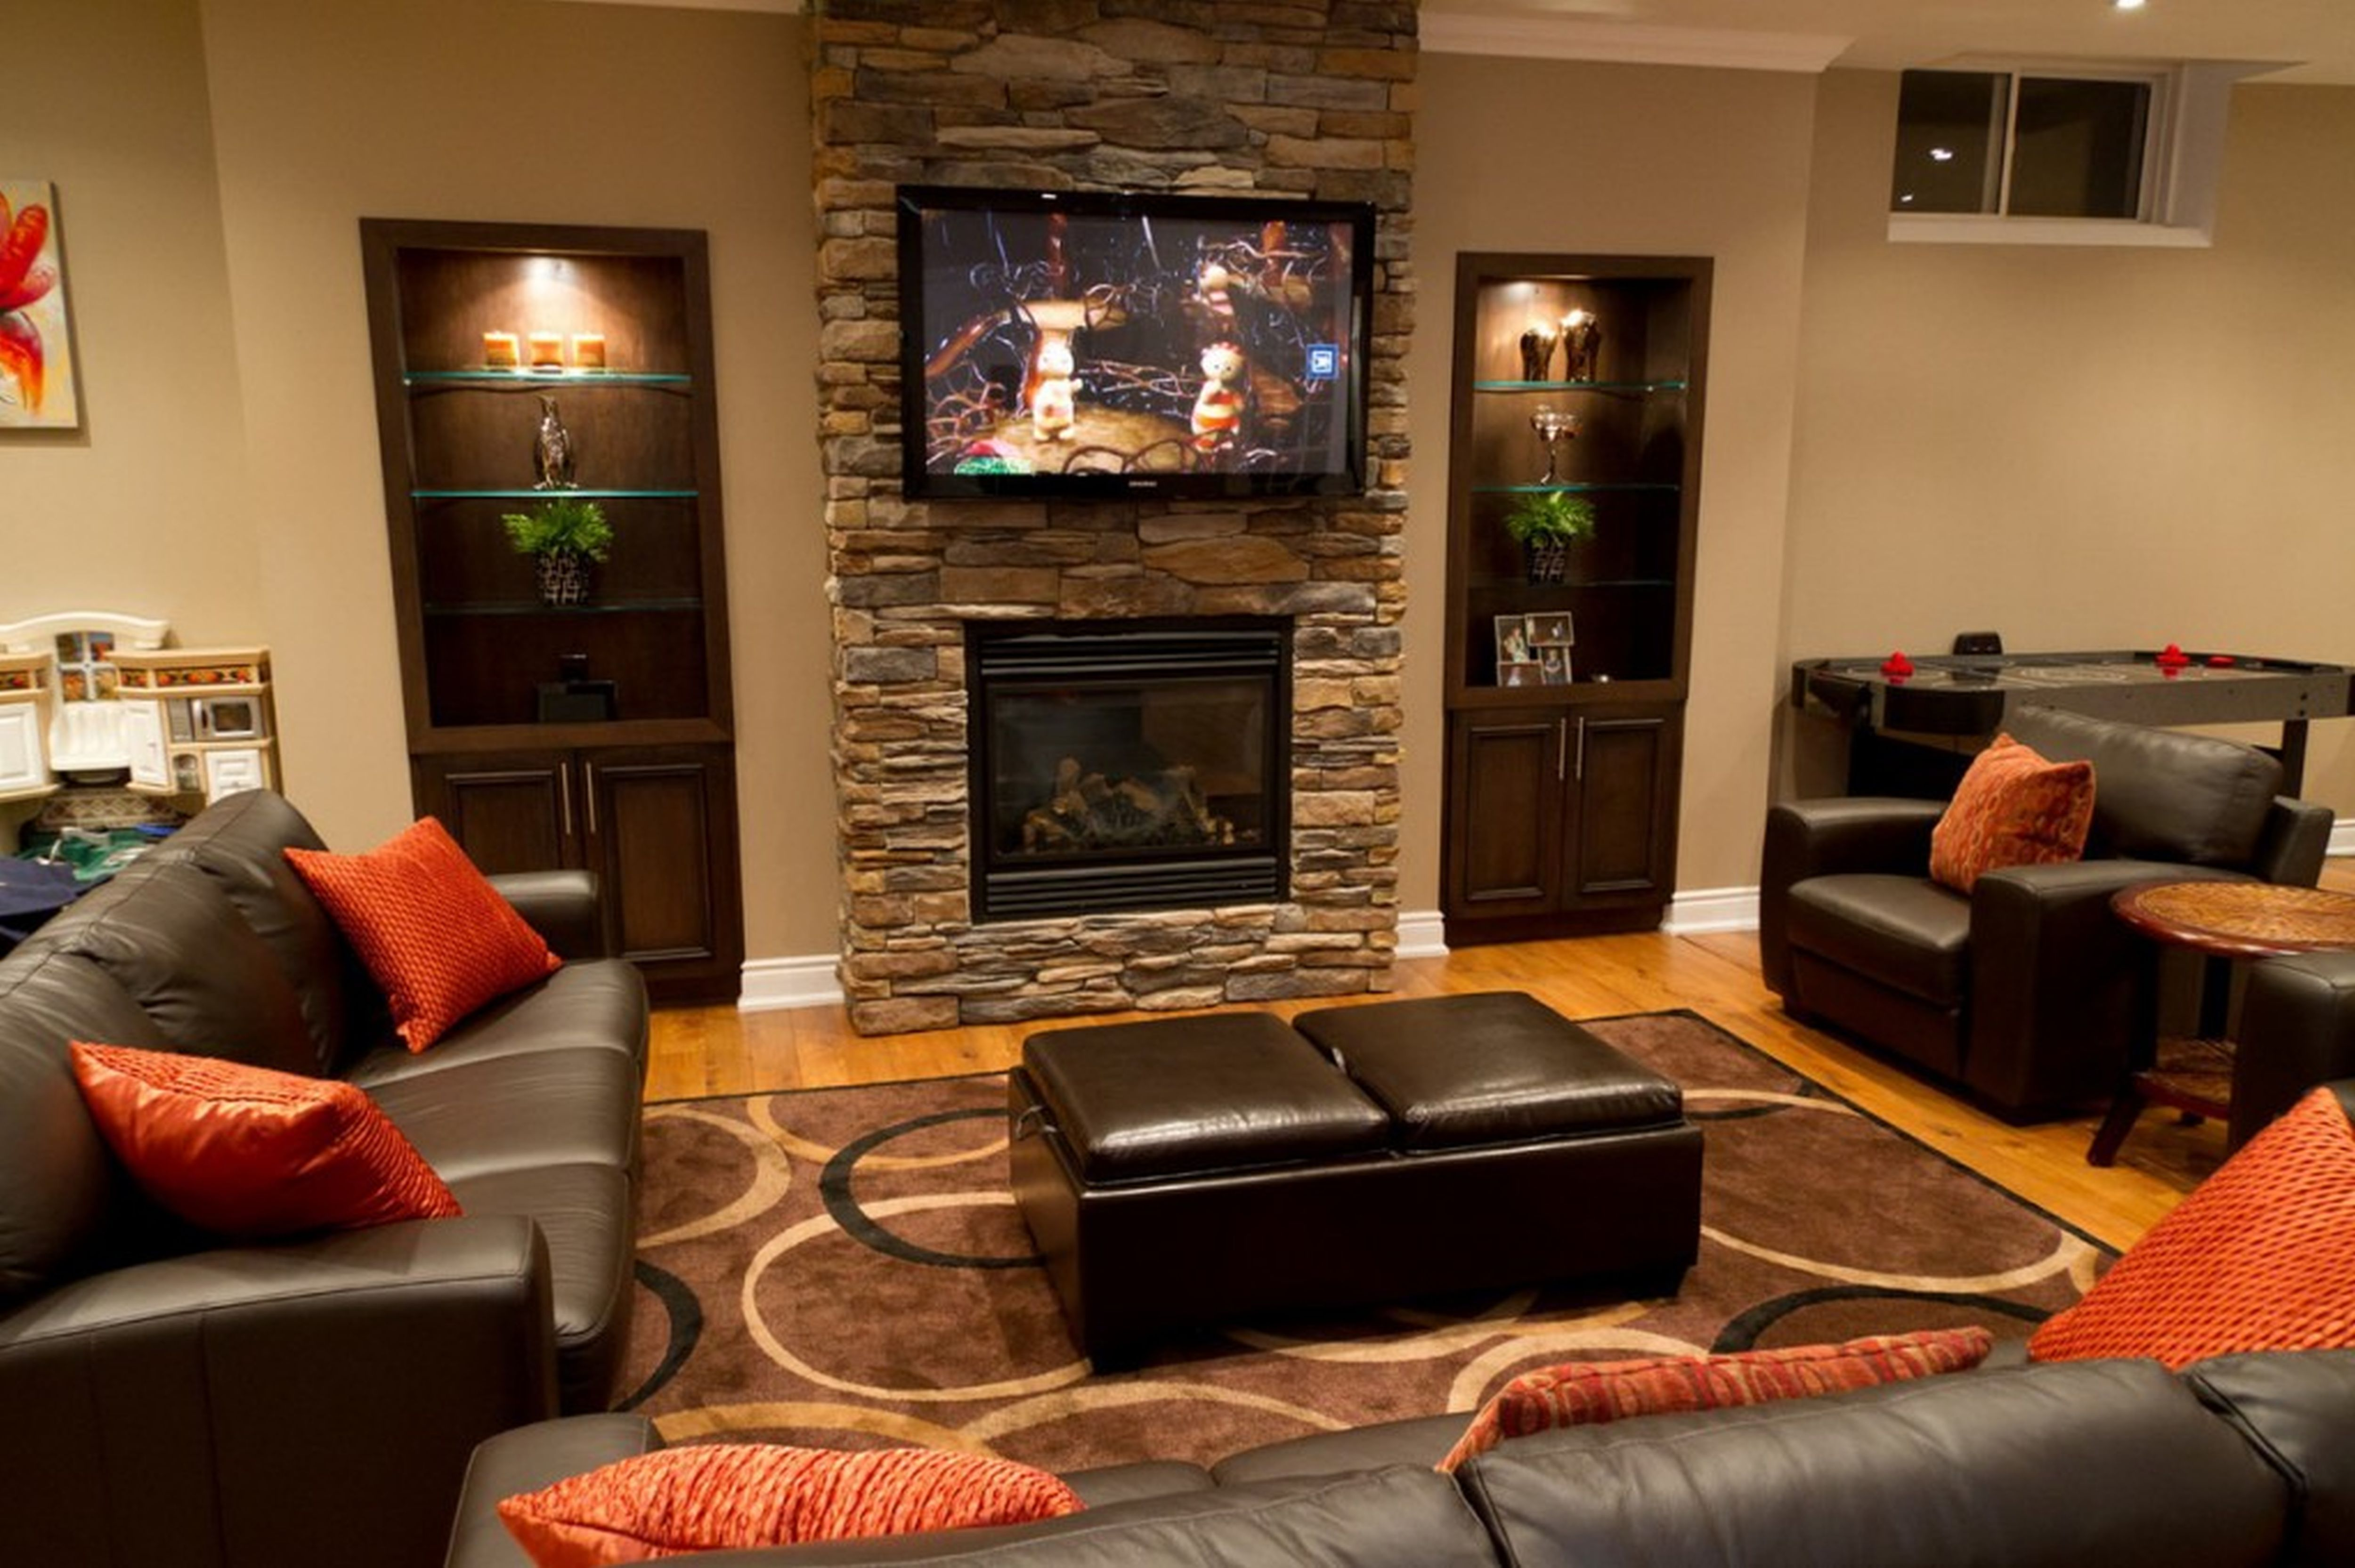 amazing living room furniture for best apartment and house designs | basement apartment ideas | basement design ideas ...